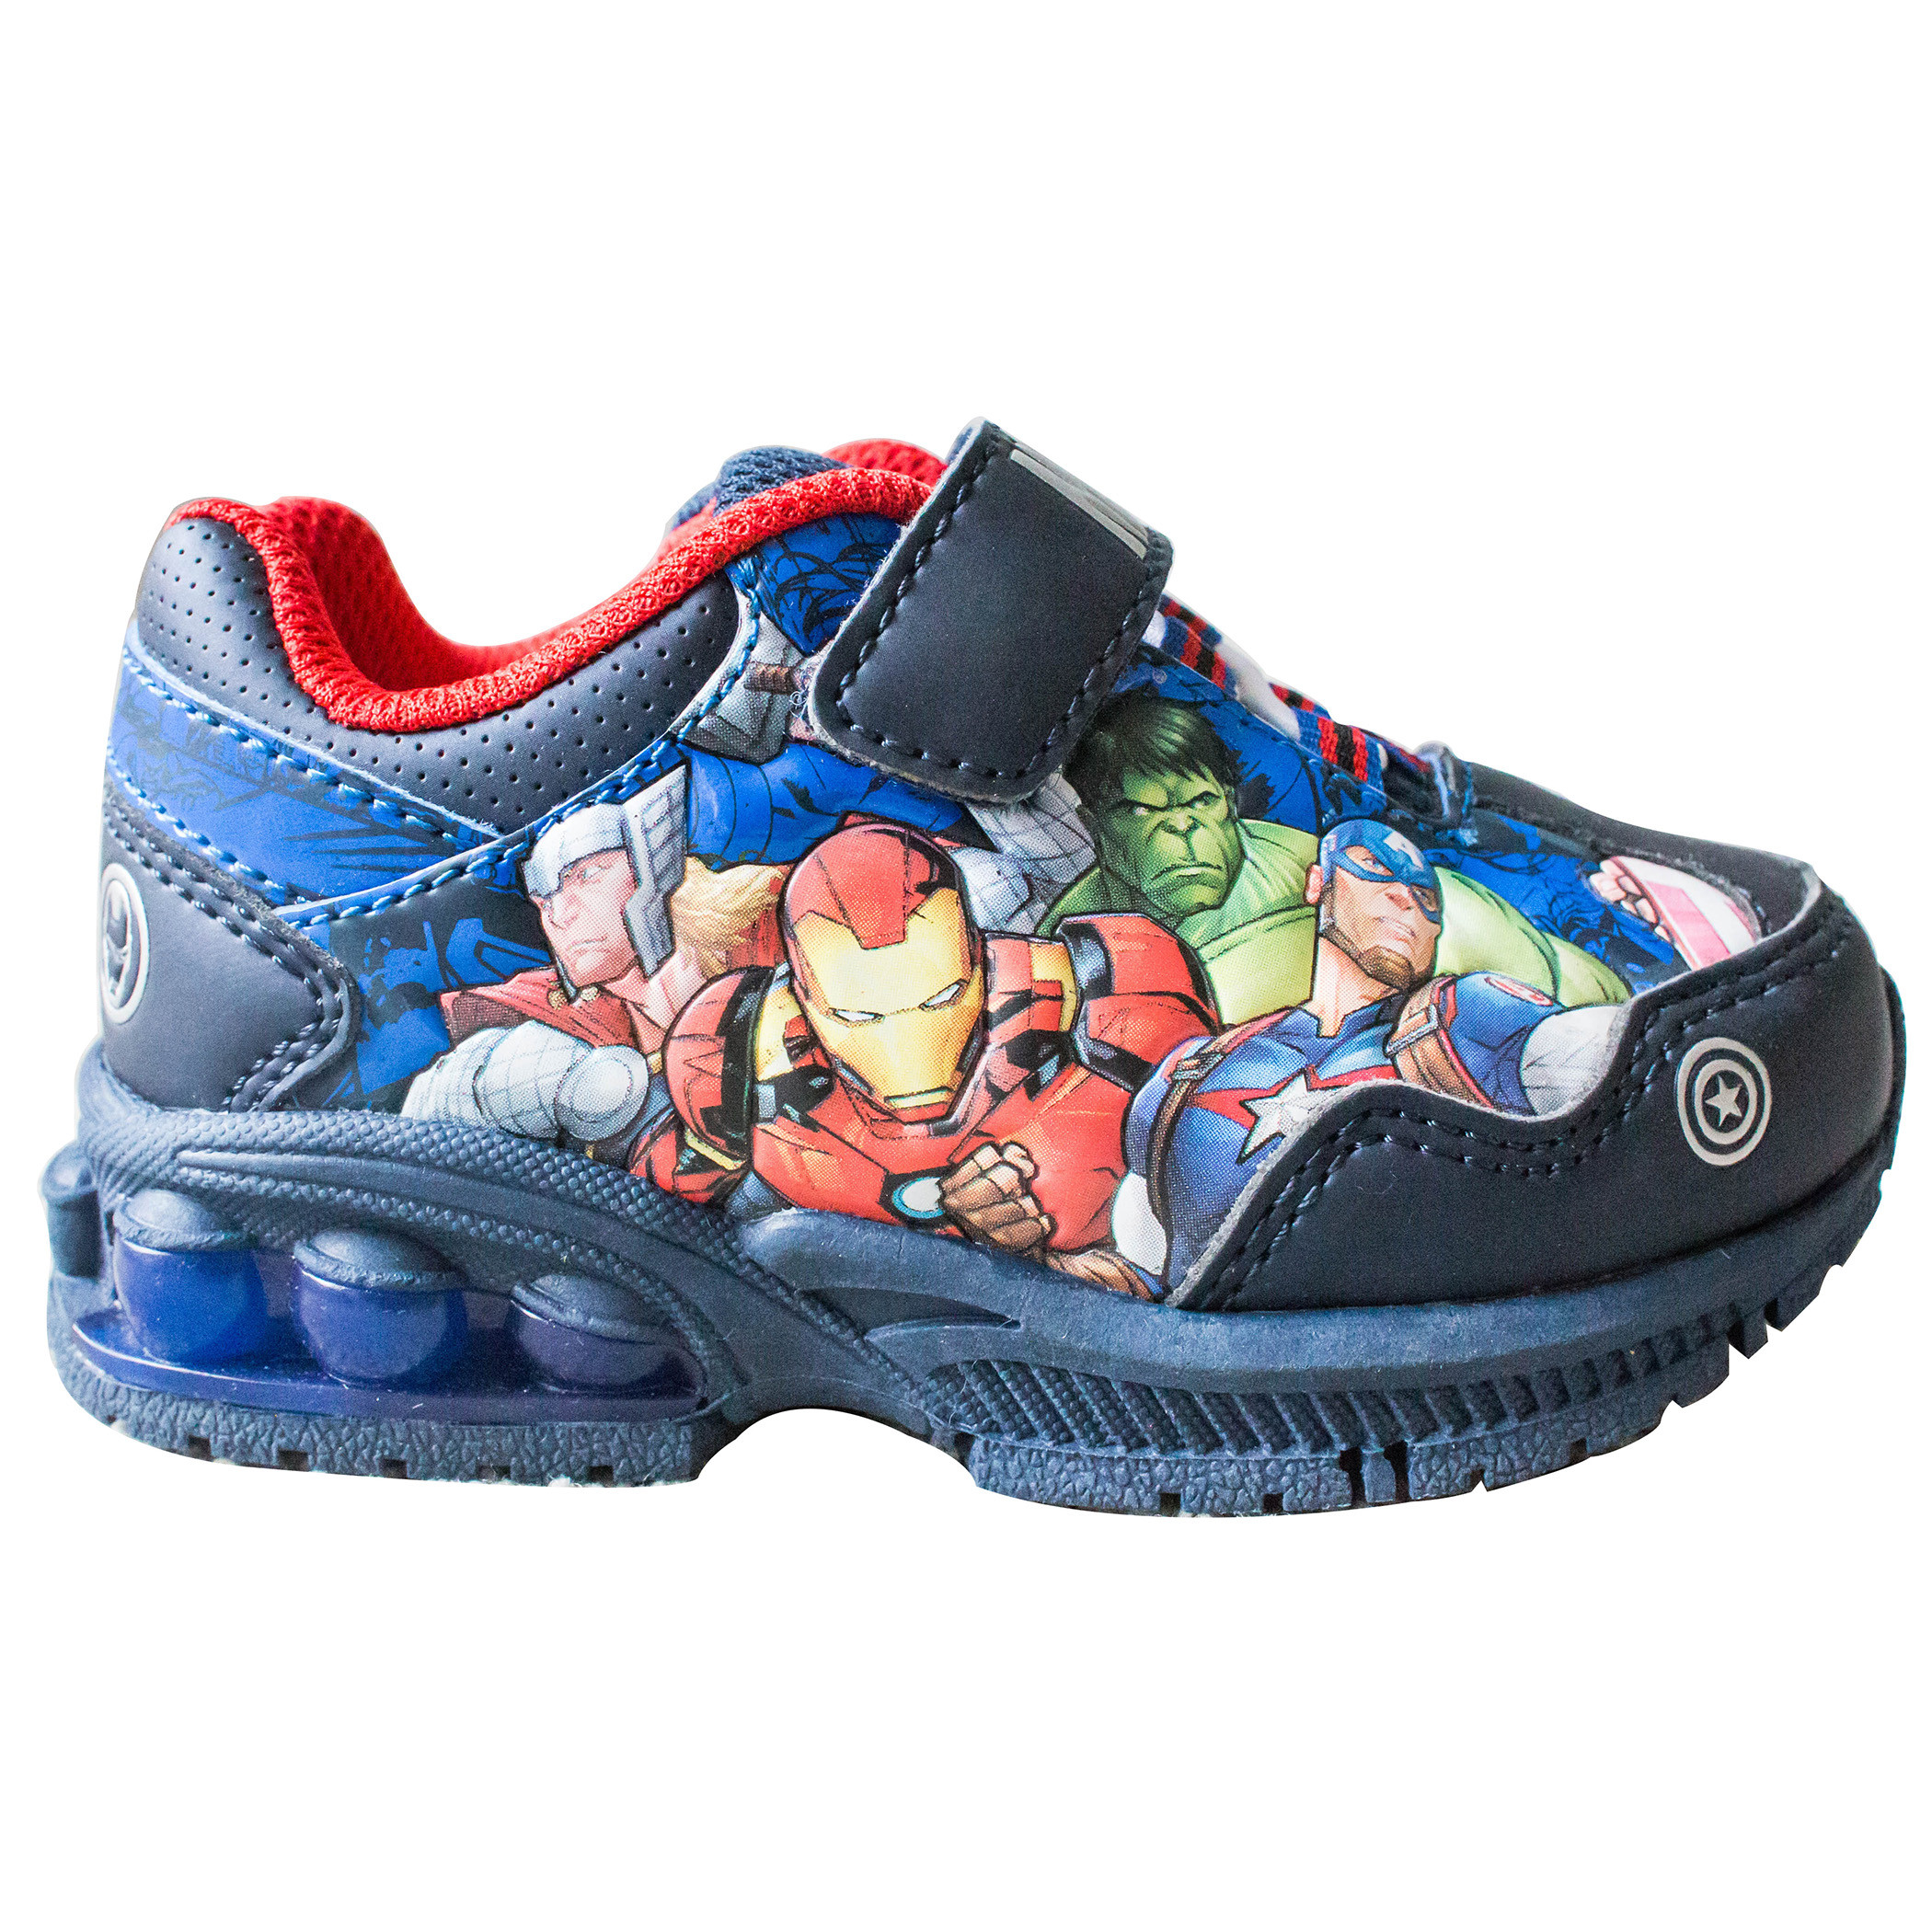 Avengers Assemble Kids Light Up Shoes